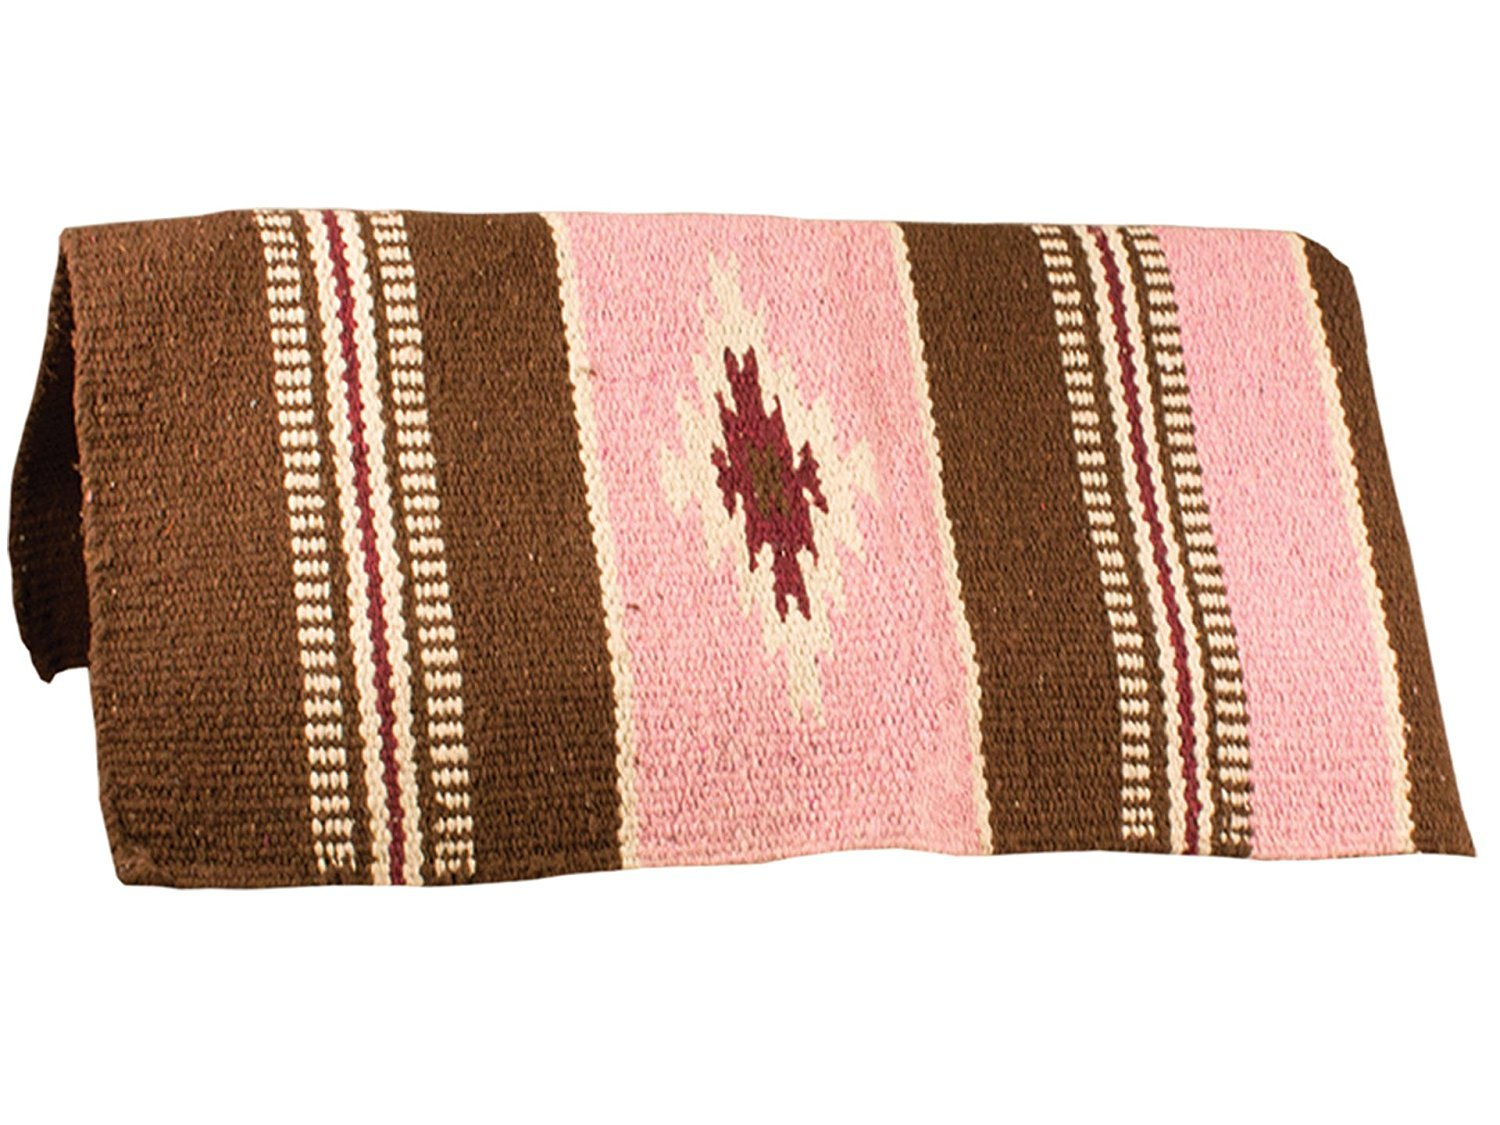 Navajo Ancient Design Saddle Blankets Hand Woven 32x64 by Tahoe